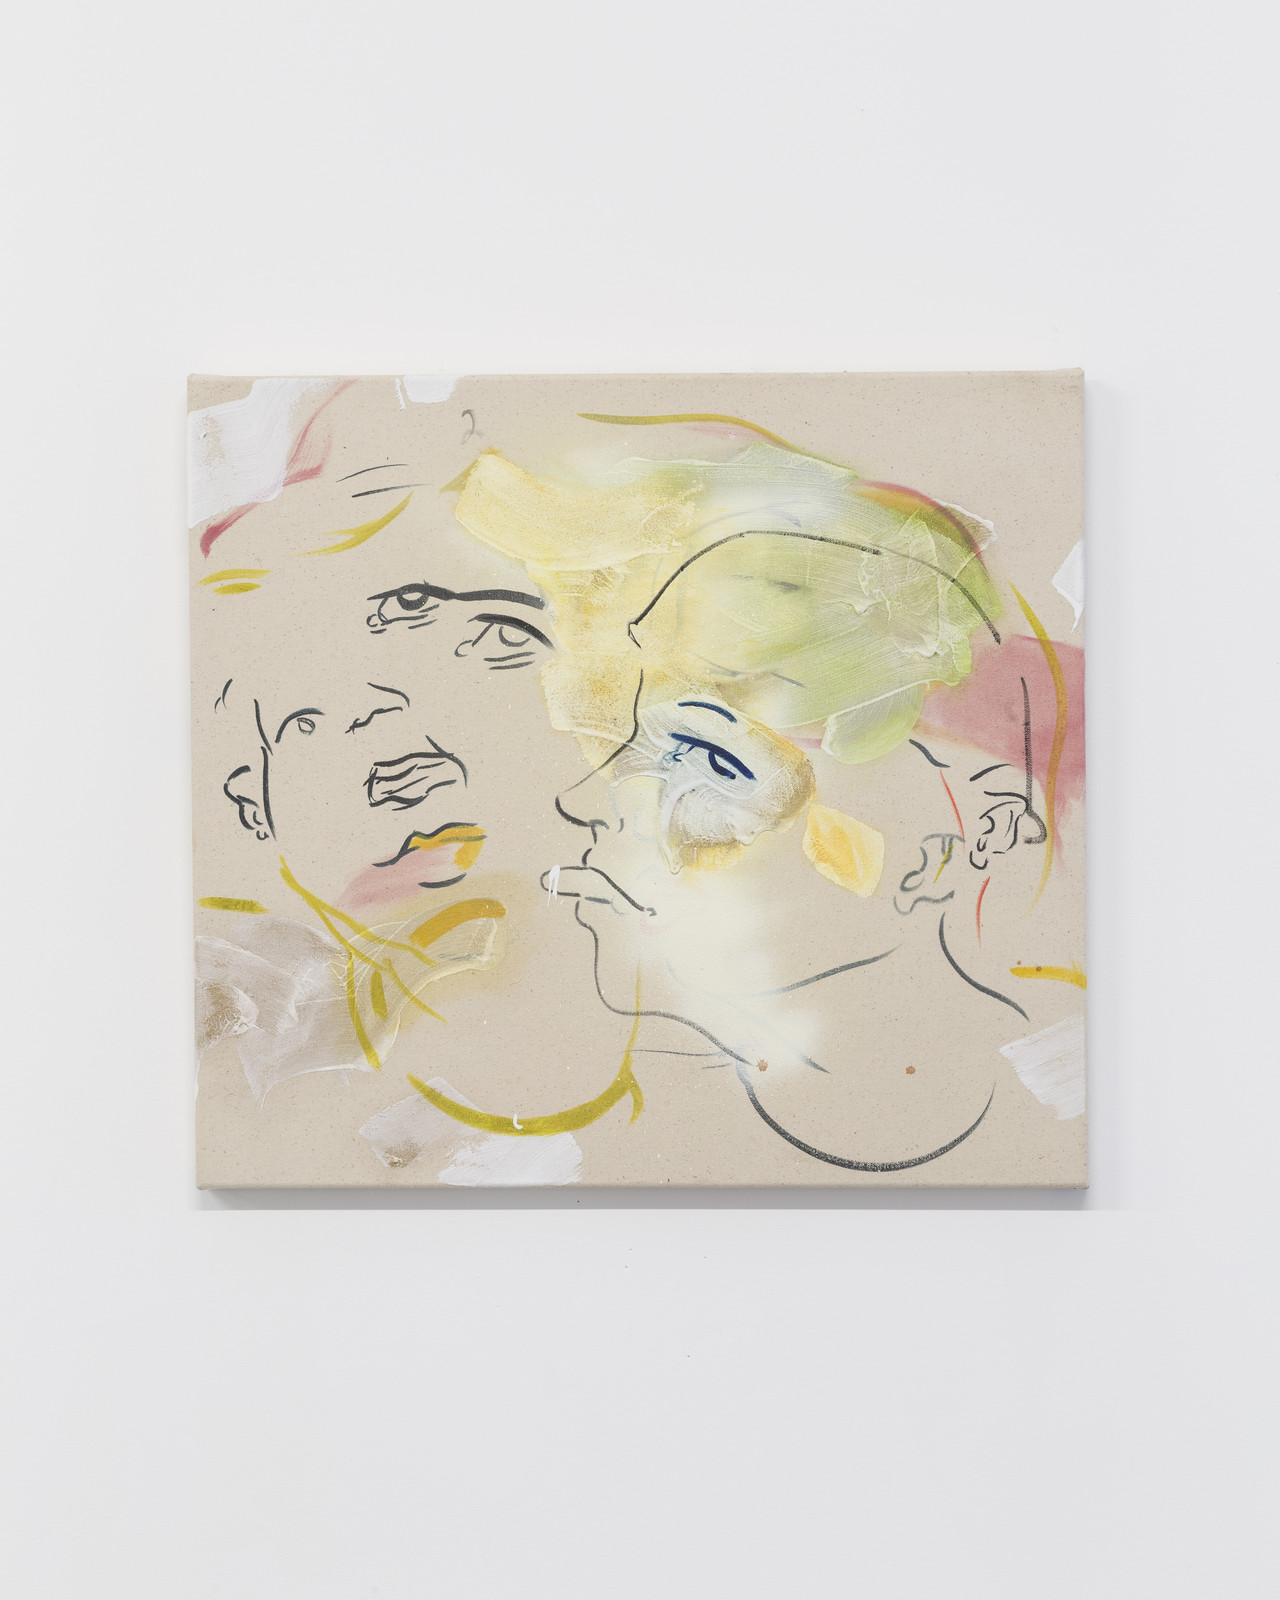 France-Lise McGurn, Cruel Intentions, 2016, gesso, oil, acrylic and spray paint on canvas, 60 x 66 cm